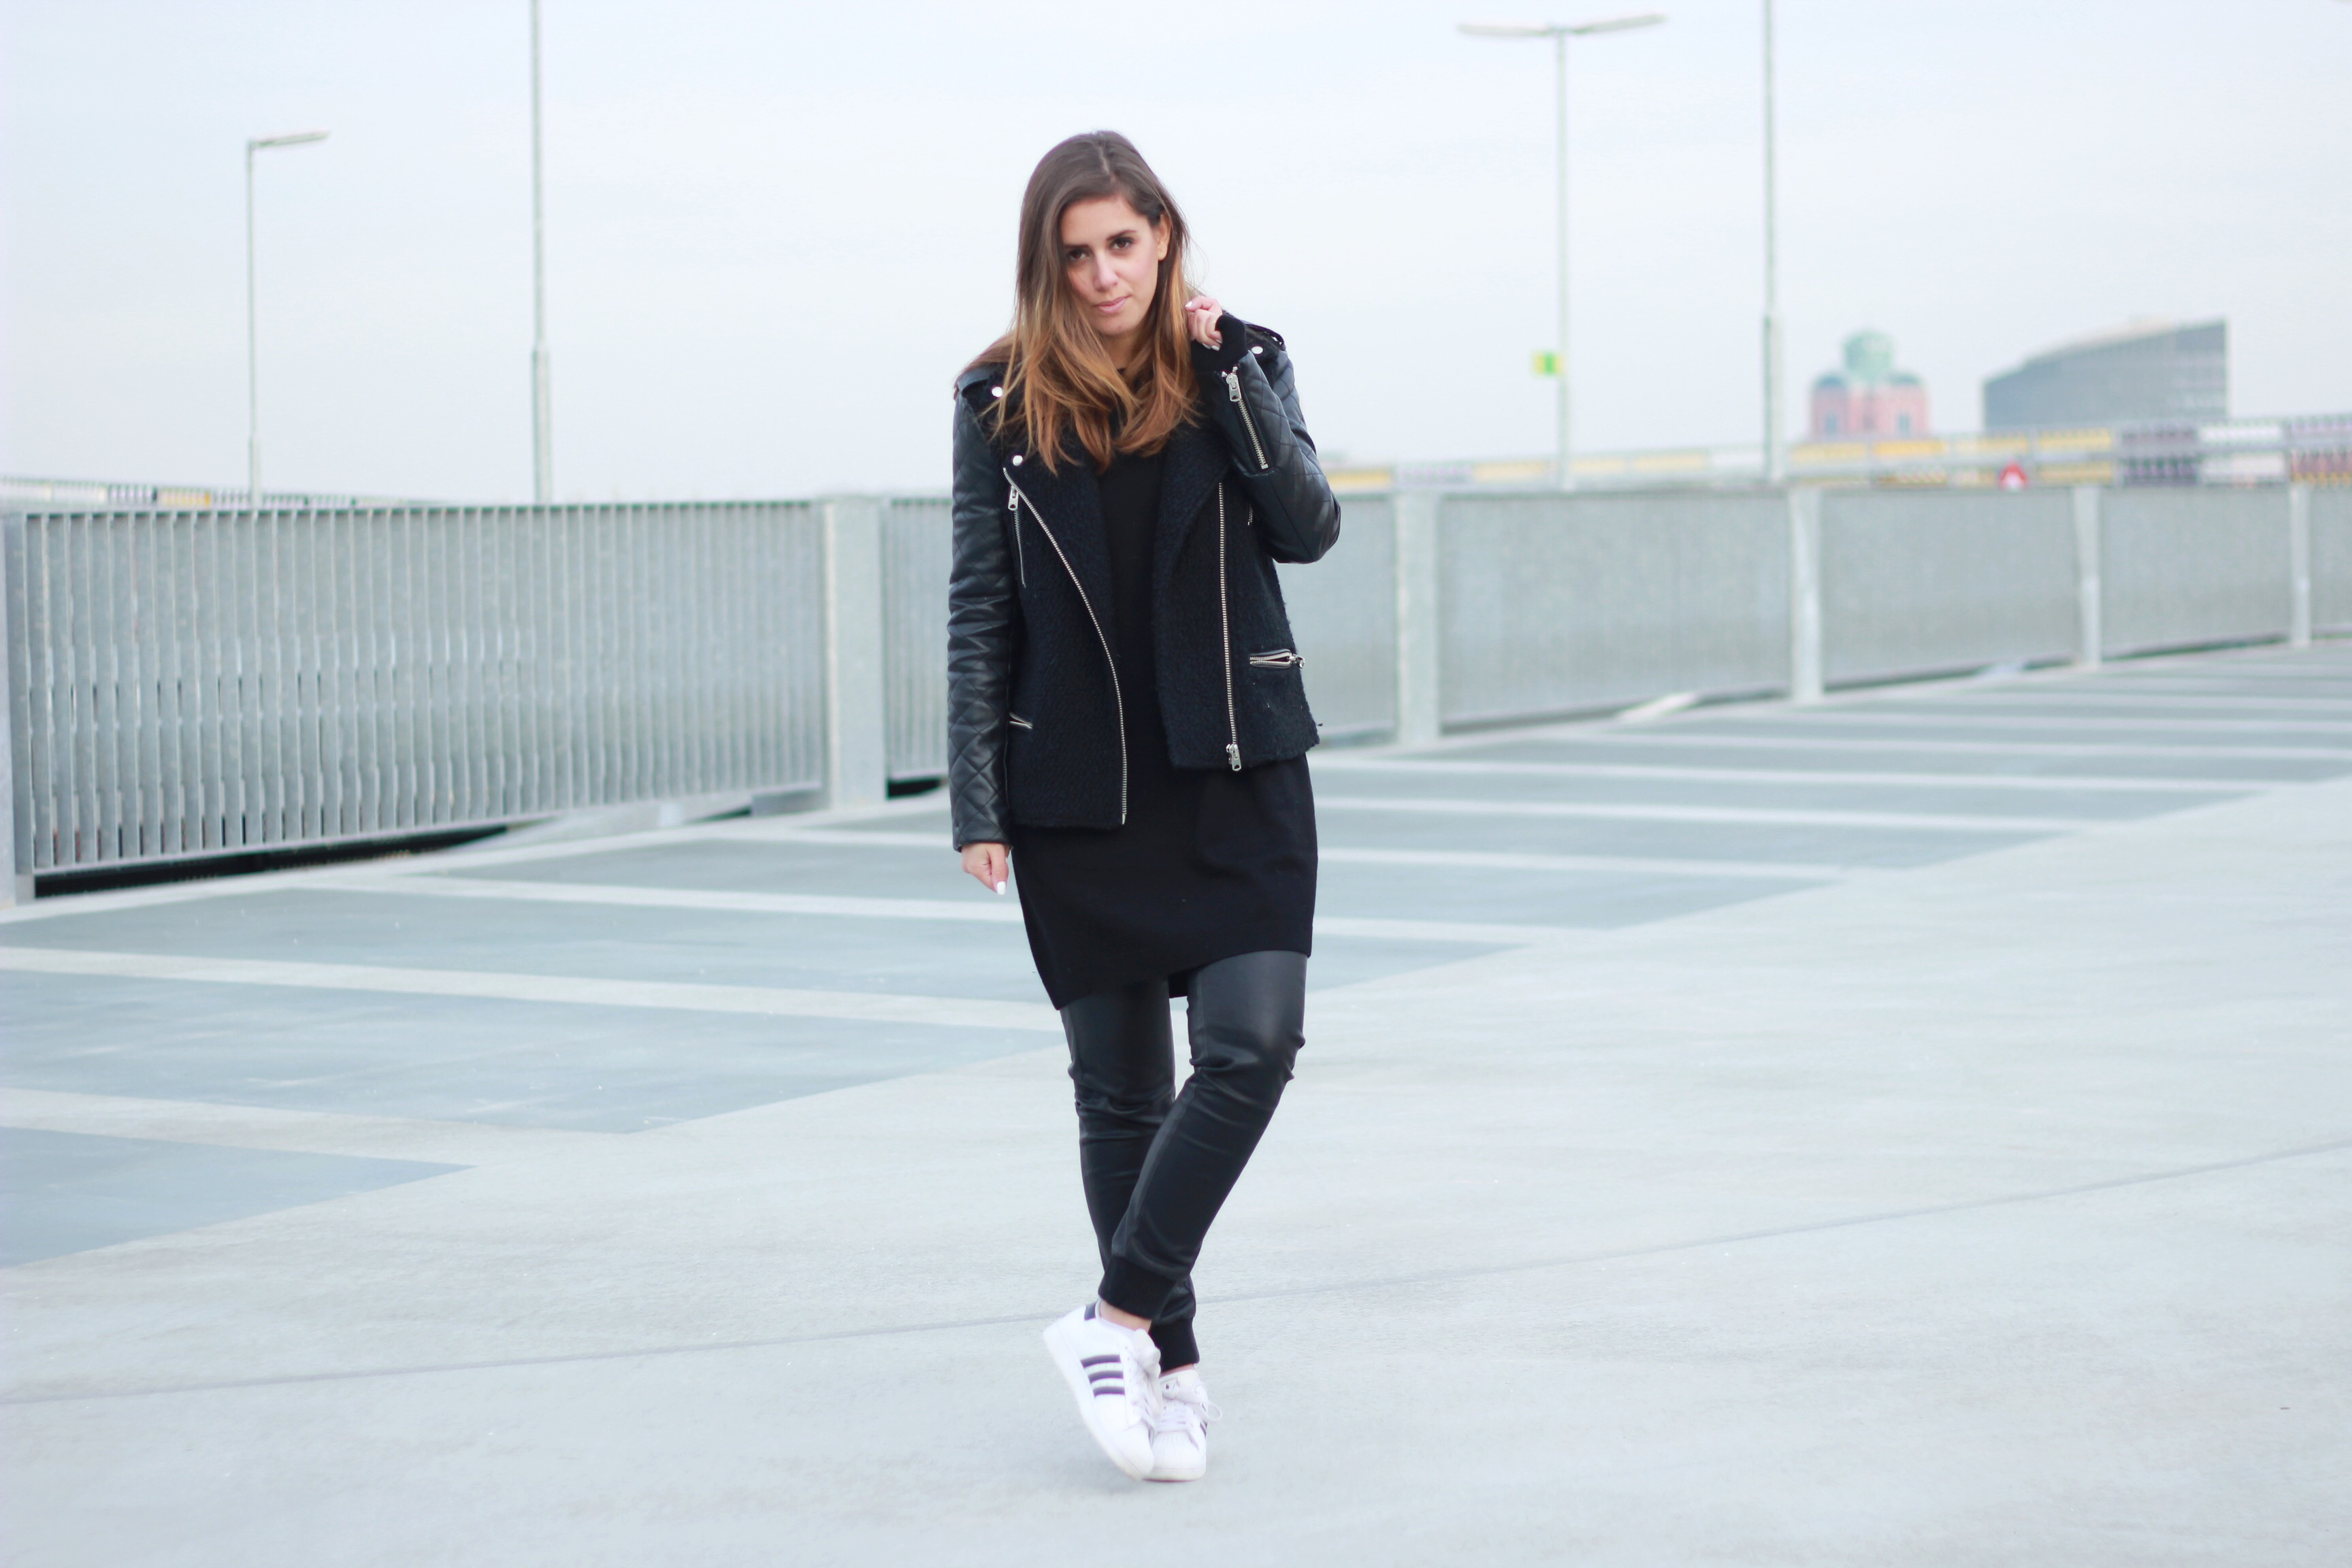 Adidas Superstar Black And White Outfit